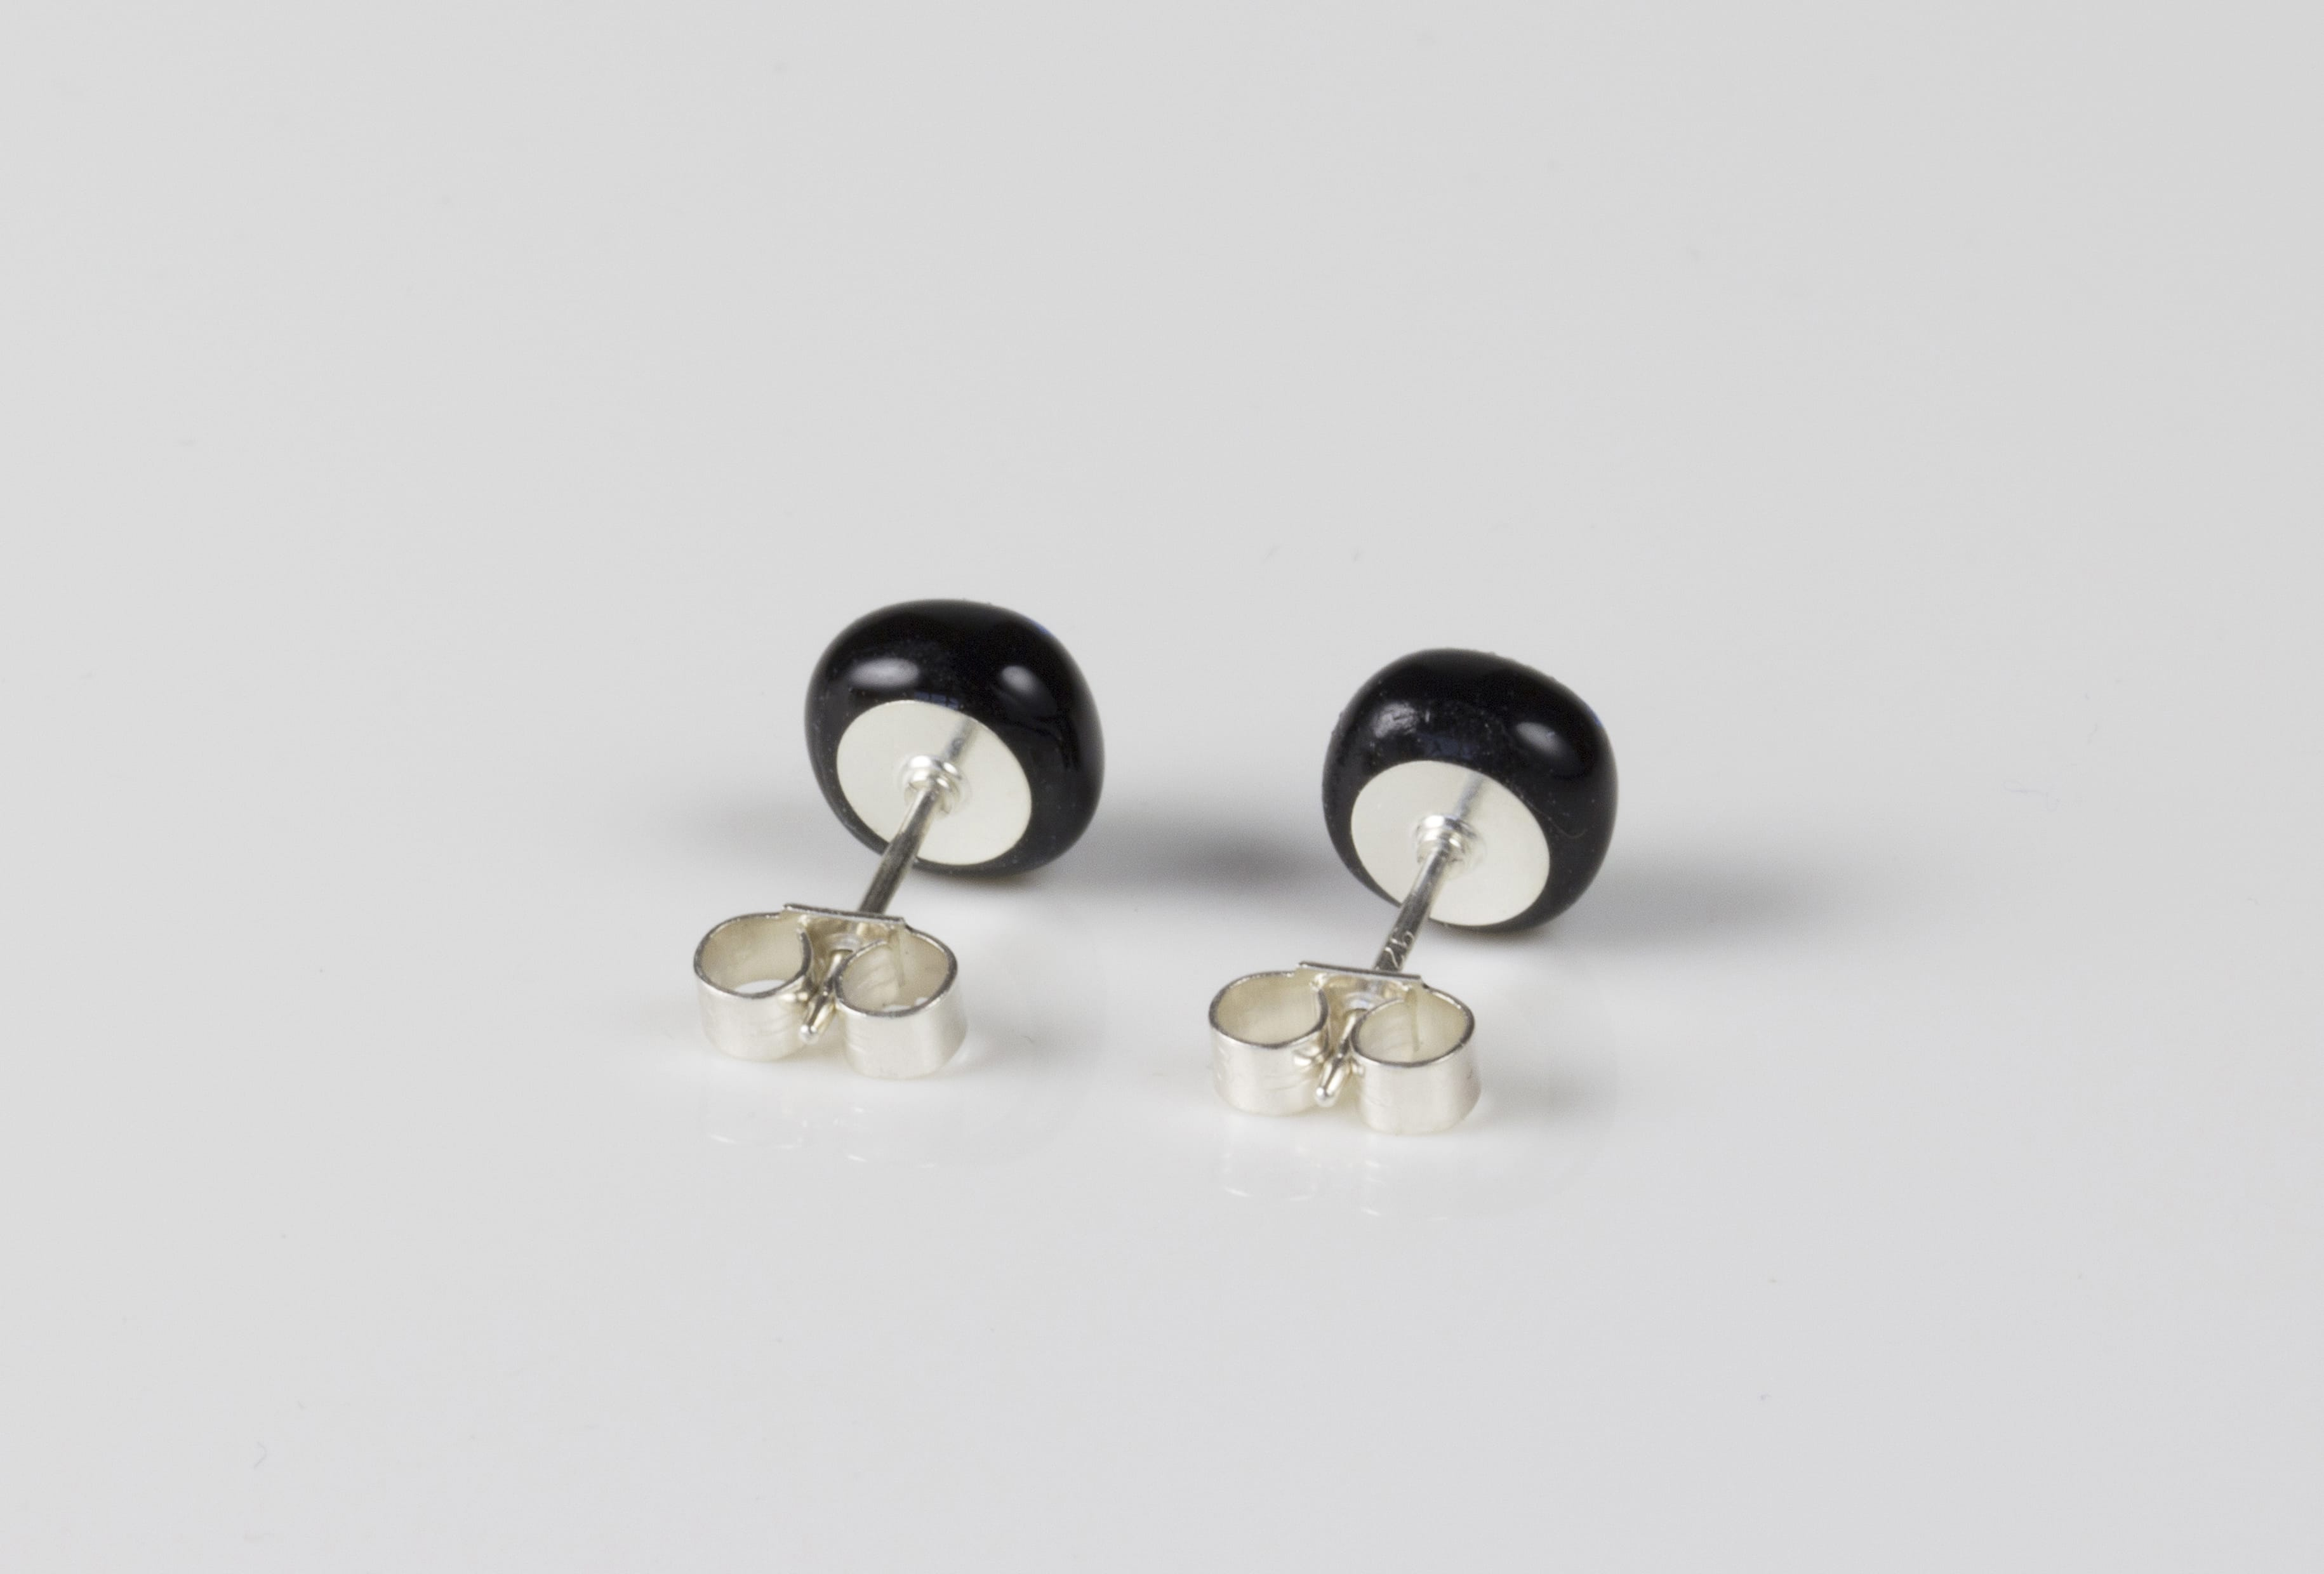 Dichroic glass jewellery uk, handmade stud earrings with pale pink dichroic glass, round, sterling glass 7-9mm, silver posts.